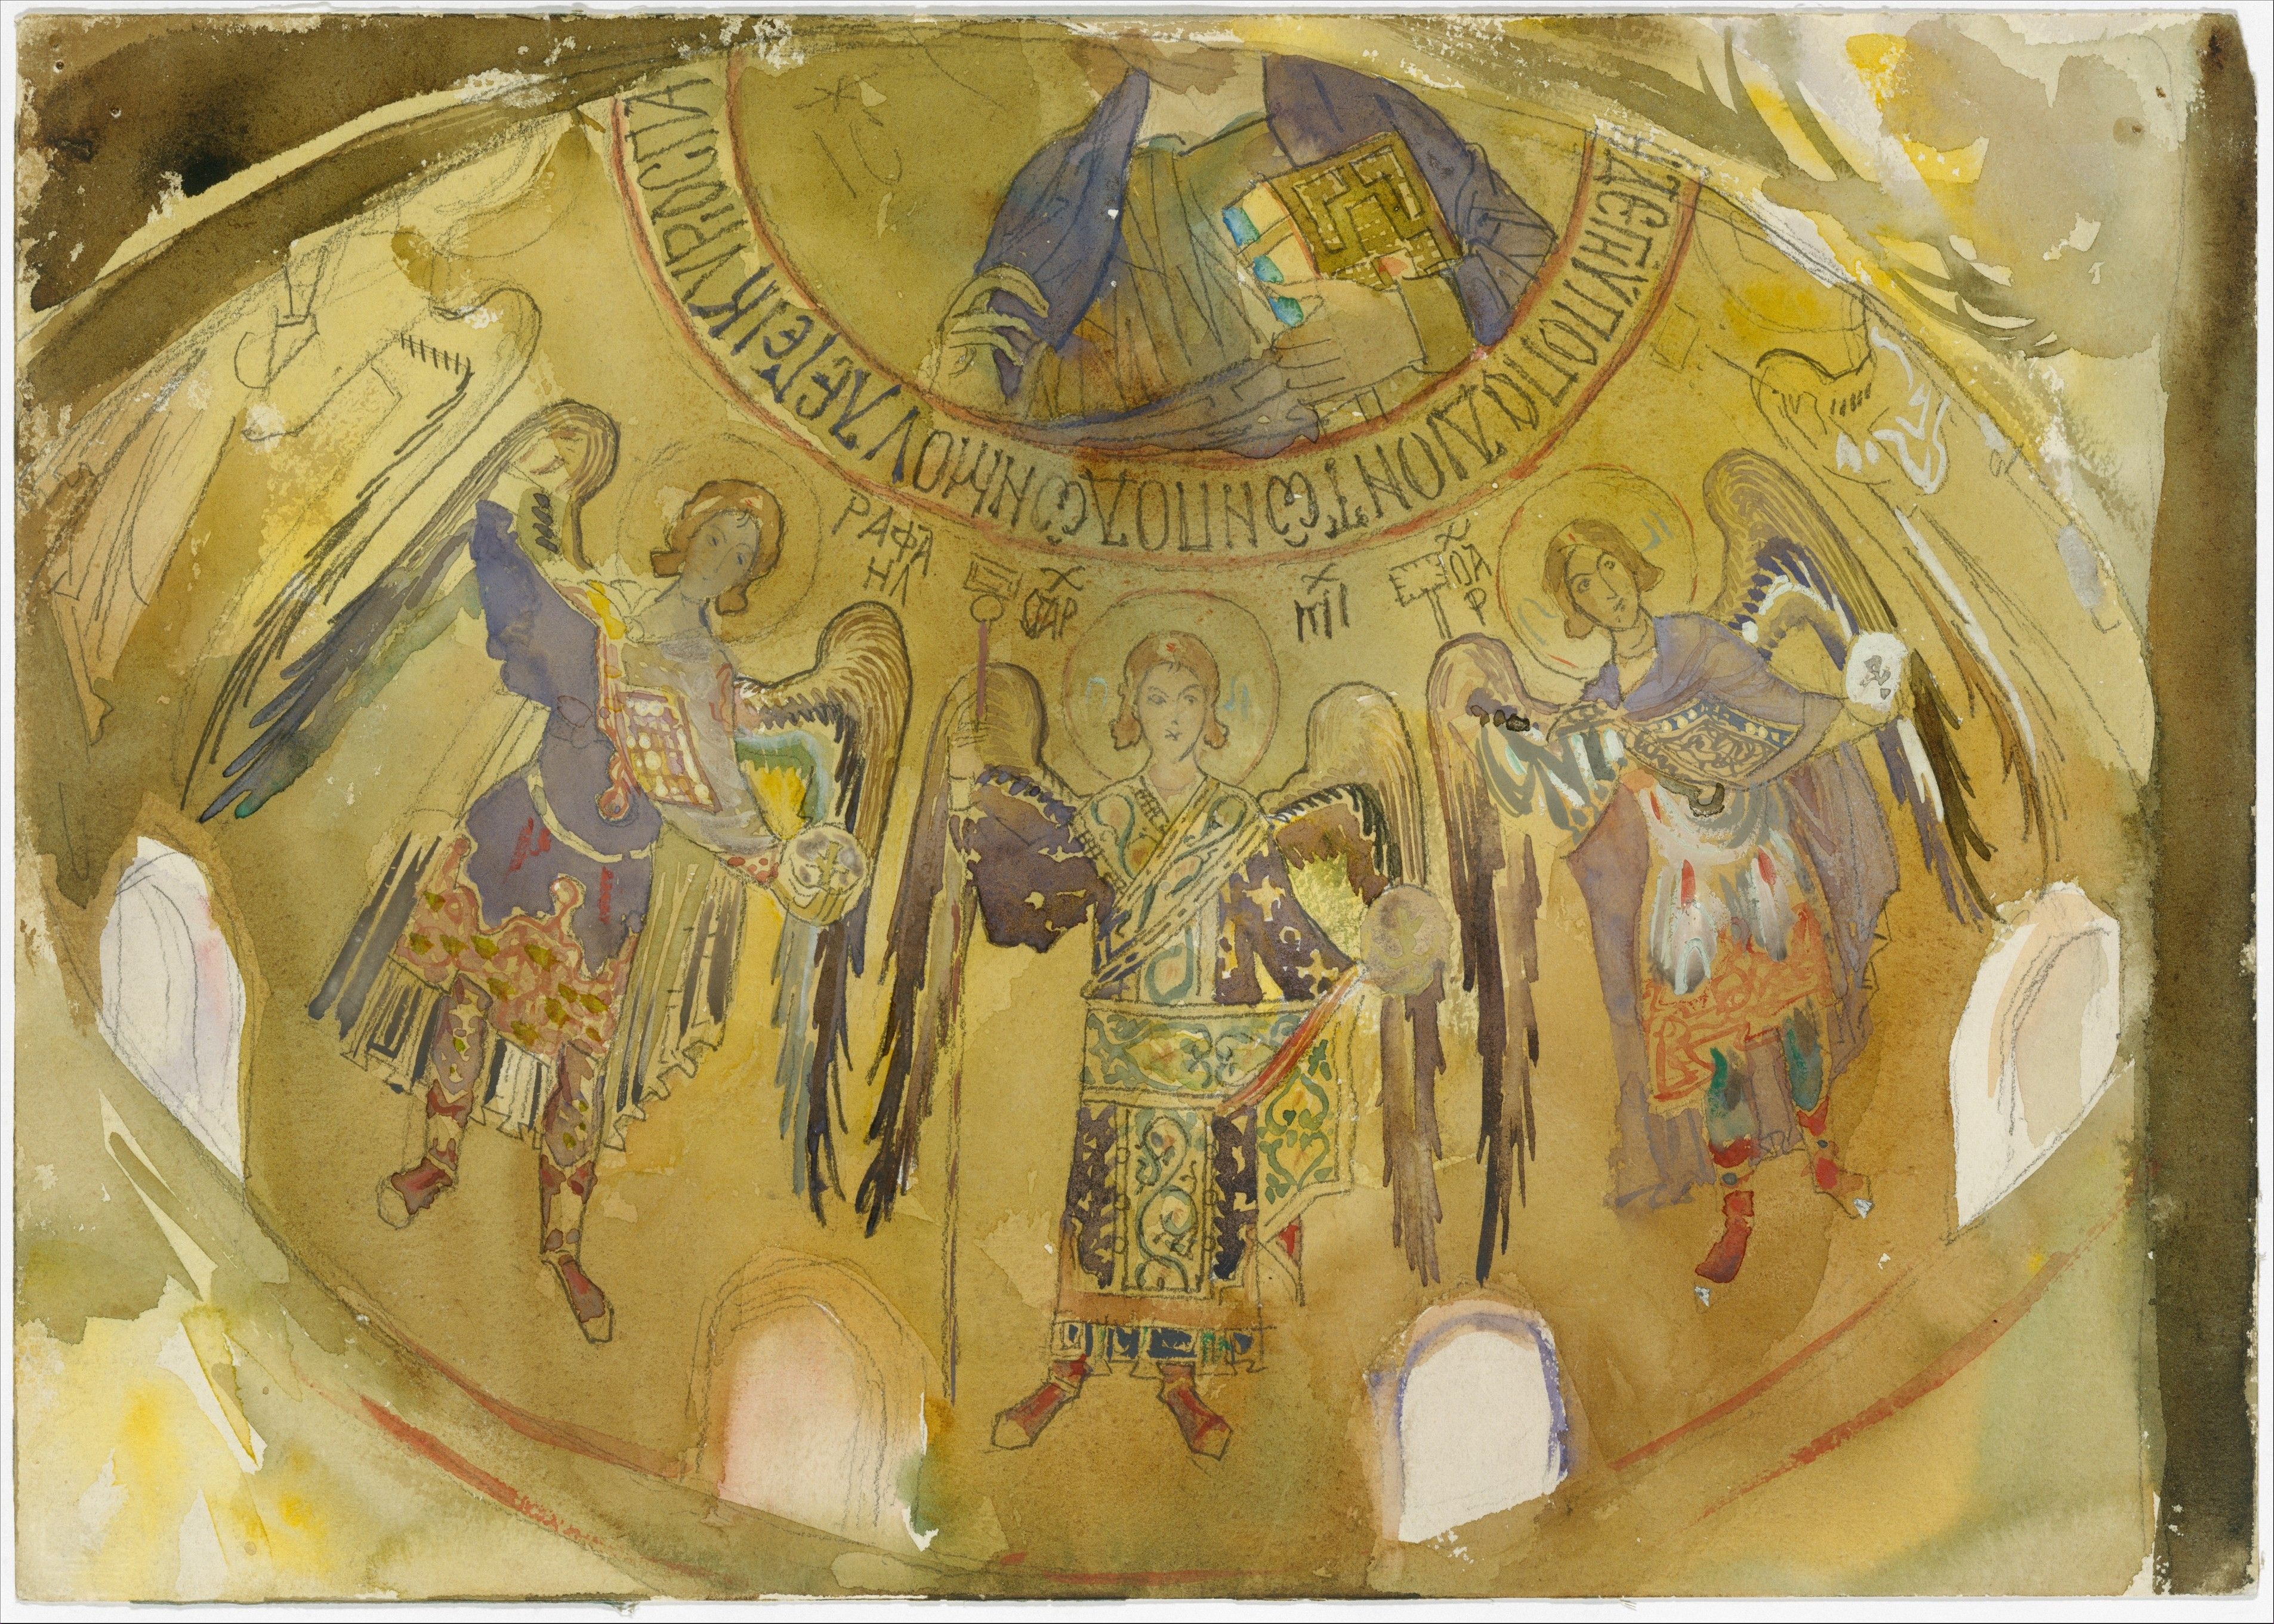 Angels, Mosaic, Palatine Chapel, Palermo Artist: John Singer Sargent (American, Florence 1856–1925 London) Date: 1897–1903 Medium: Watercolor, gouache, and graphite on off-white wove paper Dimensions: 9 13/16 x 13 15/16 in. (24.9 x 35.4 cm) Classification: Drawings